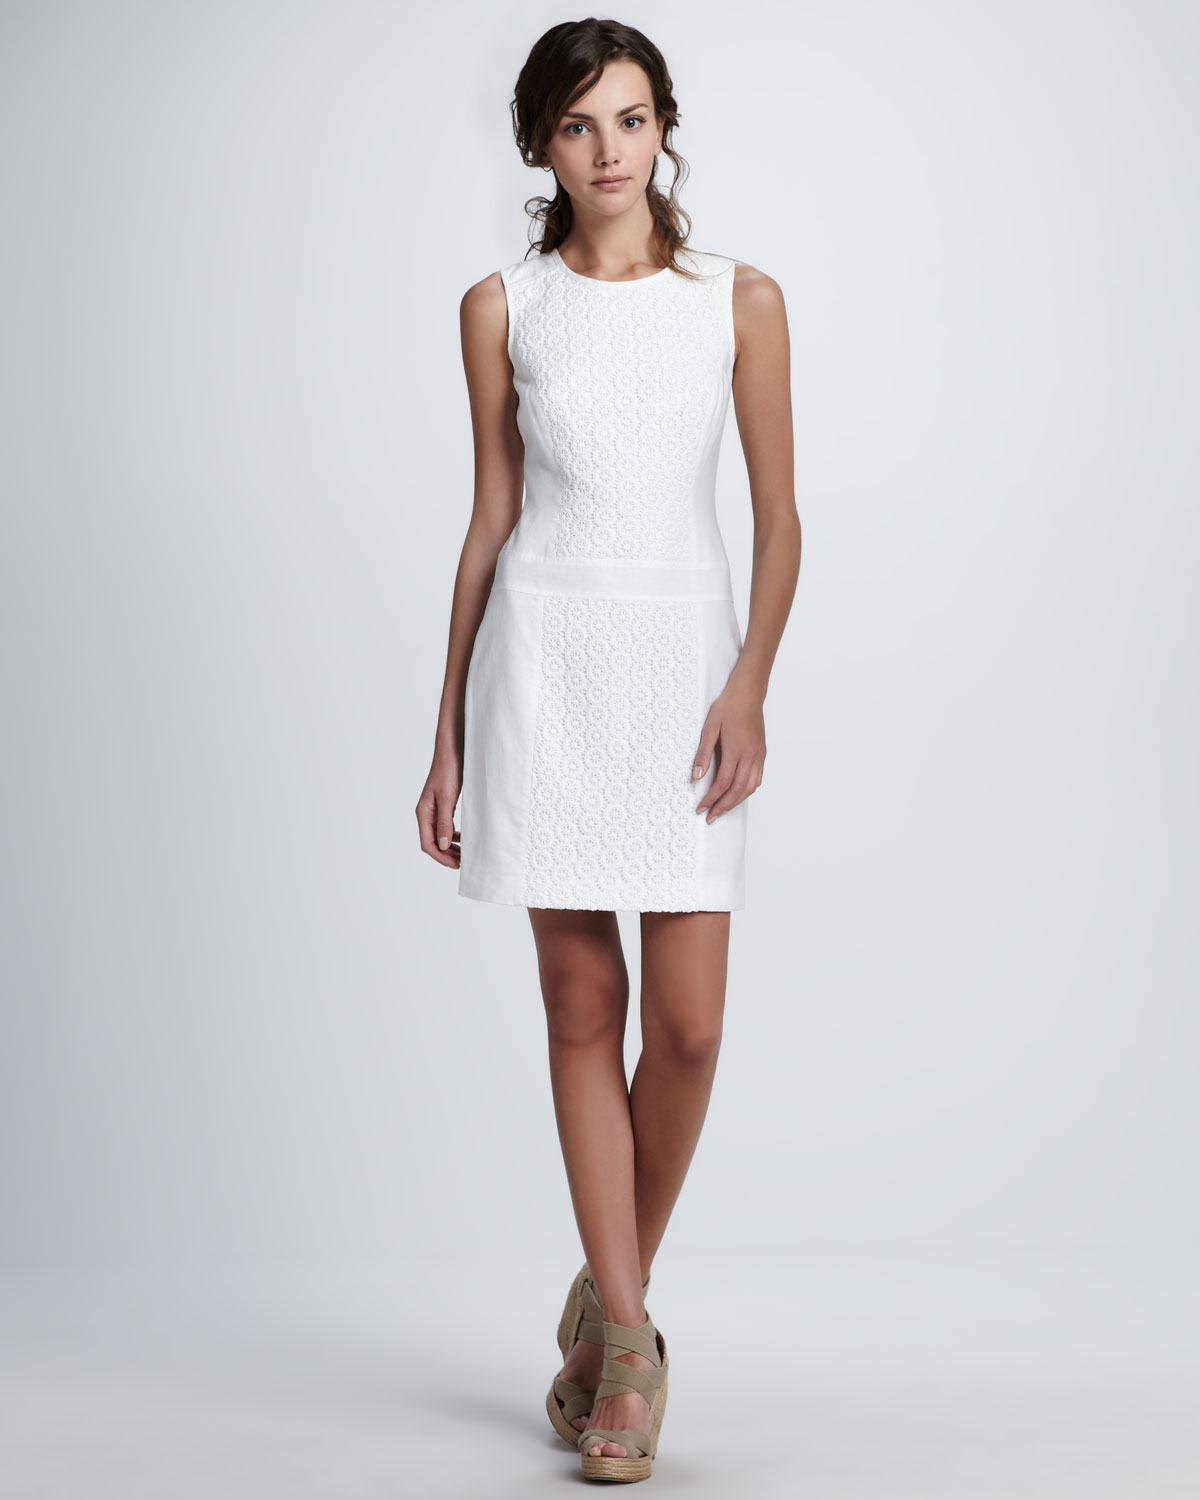 Freshen up your wardrobe with a new dress from JCPenney!,+ followers on Twitter.